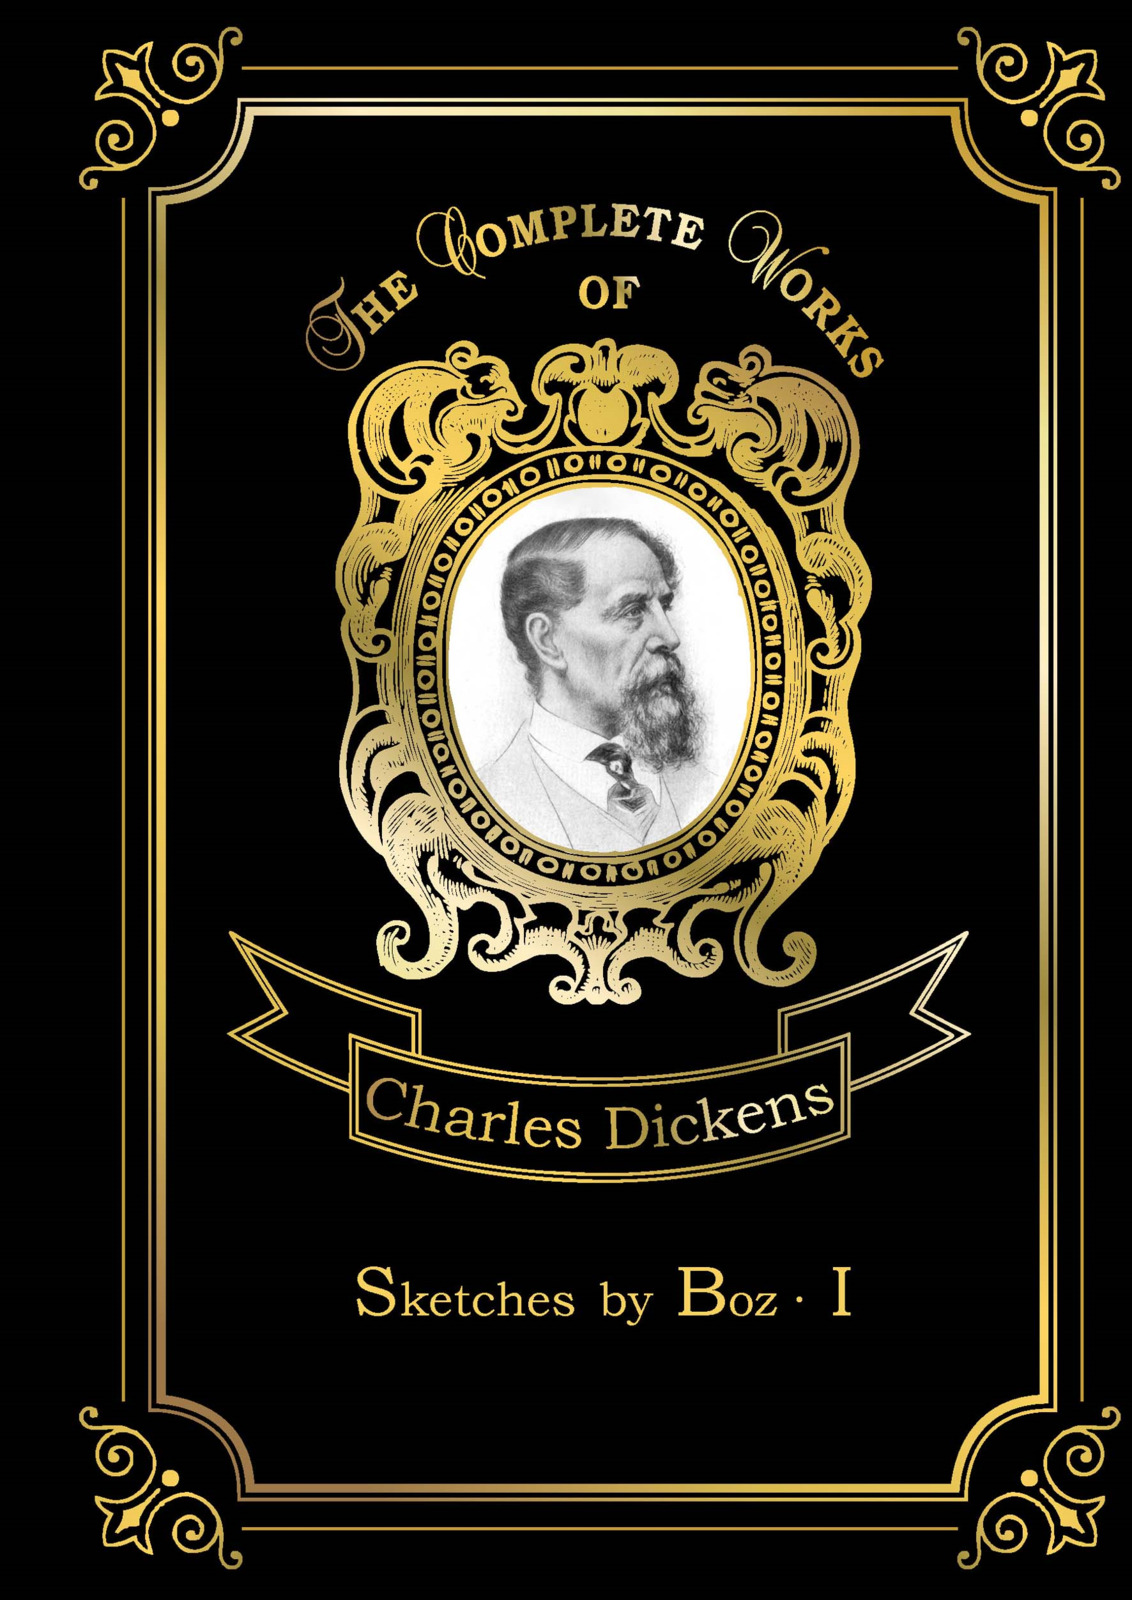 C. Dickens Sketches by Boz: Book 1 dent clinton thomas above the snow line mountaineering sketches between 1870 and 1880